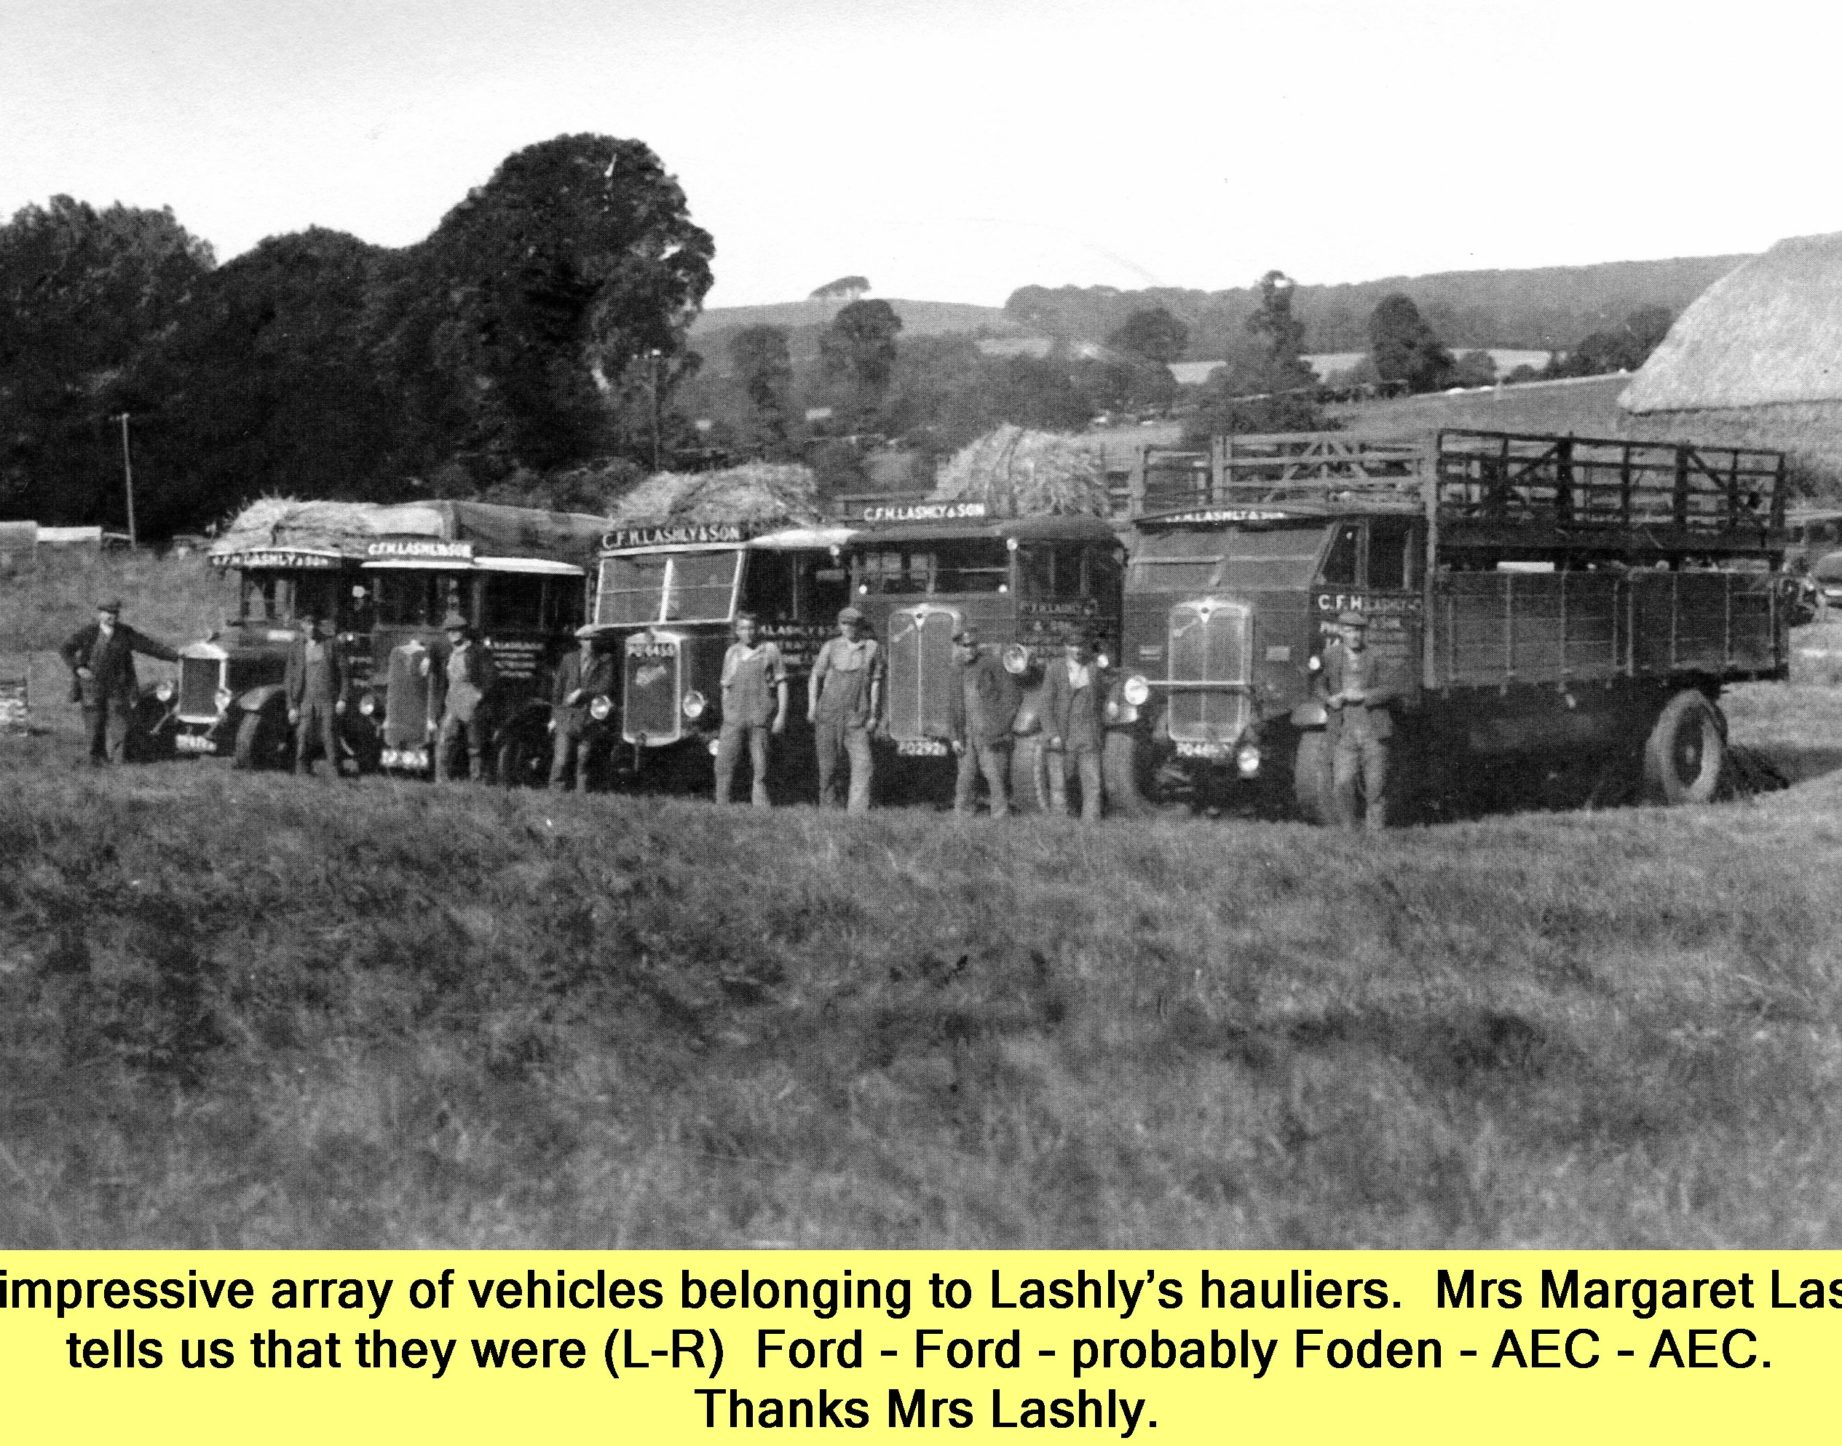 Lashly vehicles Ford - Ford - maybe Foden - AEC - AEC